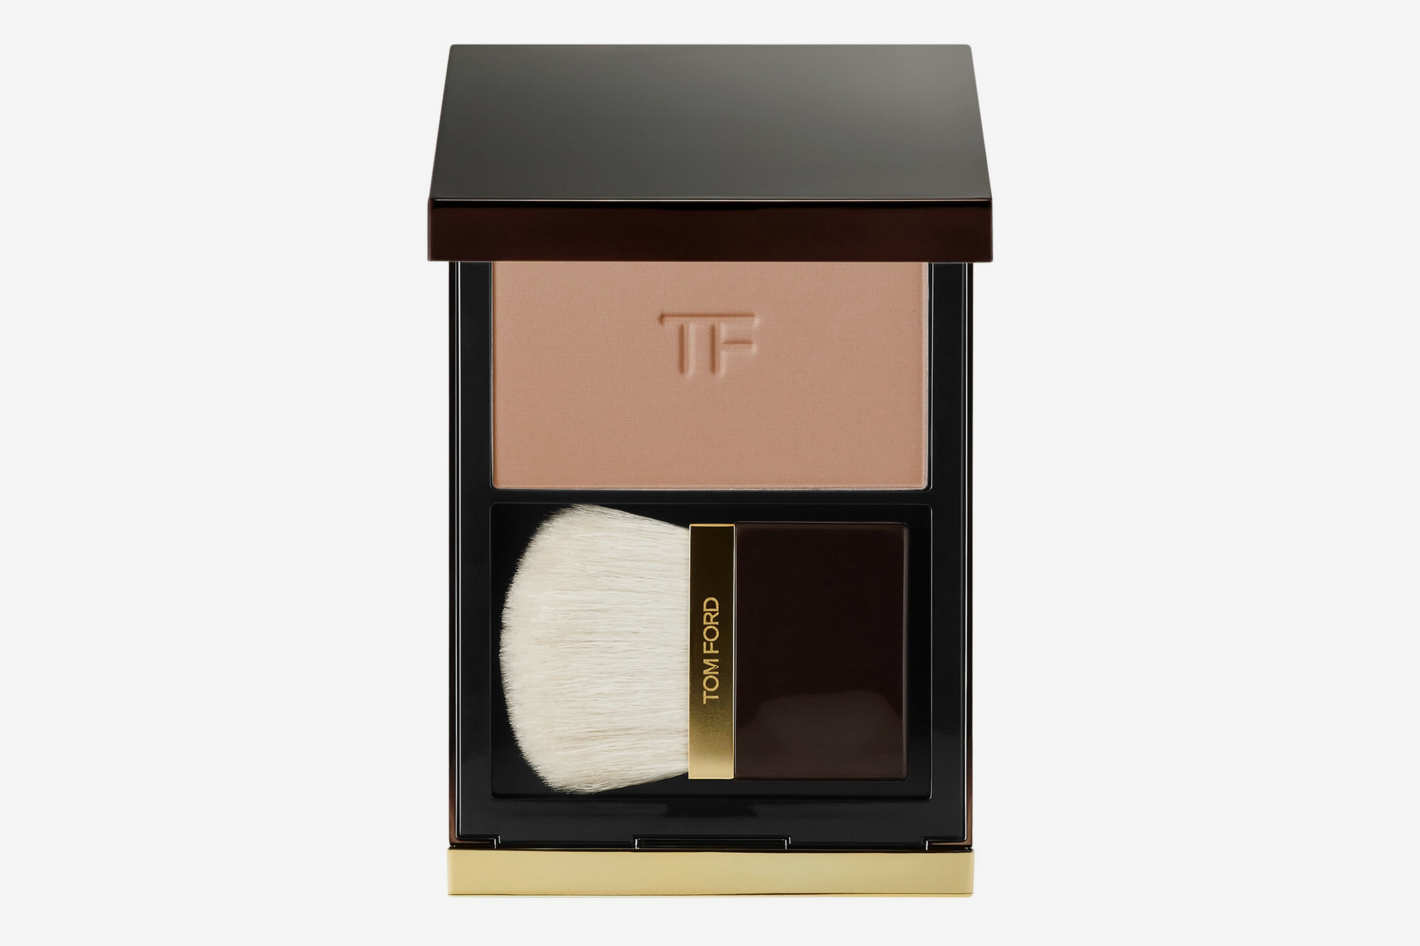 Tom Ford Translucent Finishing Powder in Sahara Dusk